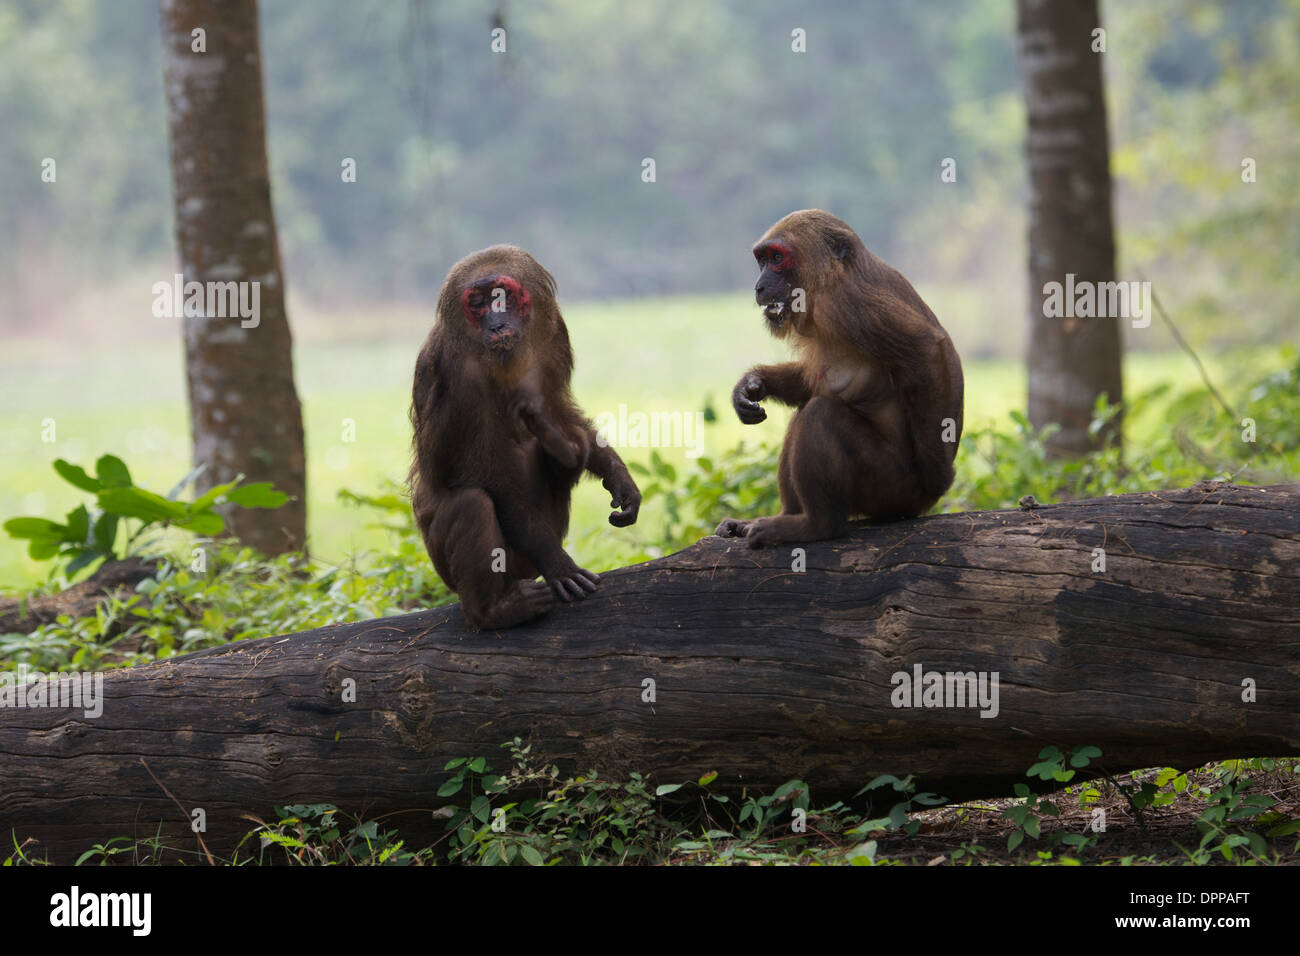 Stump-tailed macaques (Macaca arctoides) - Stock Image